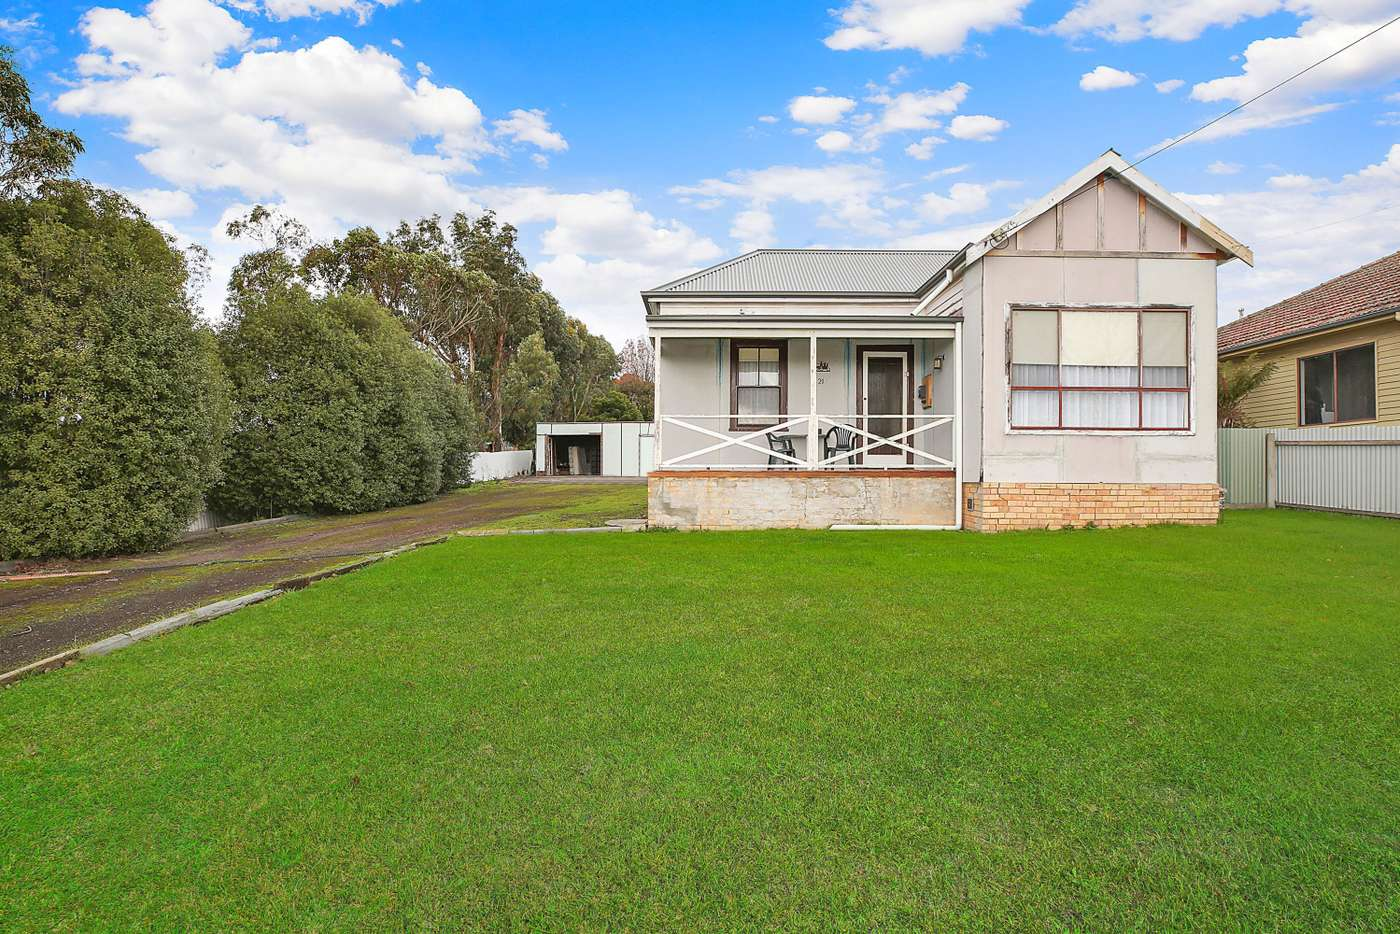 Main view of Homely house listing, 21 Henderson Street, Camperdown VIC 3260